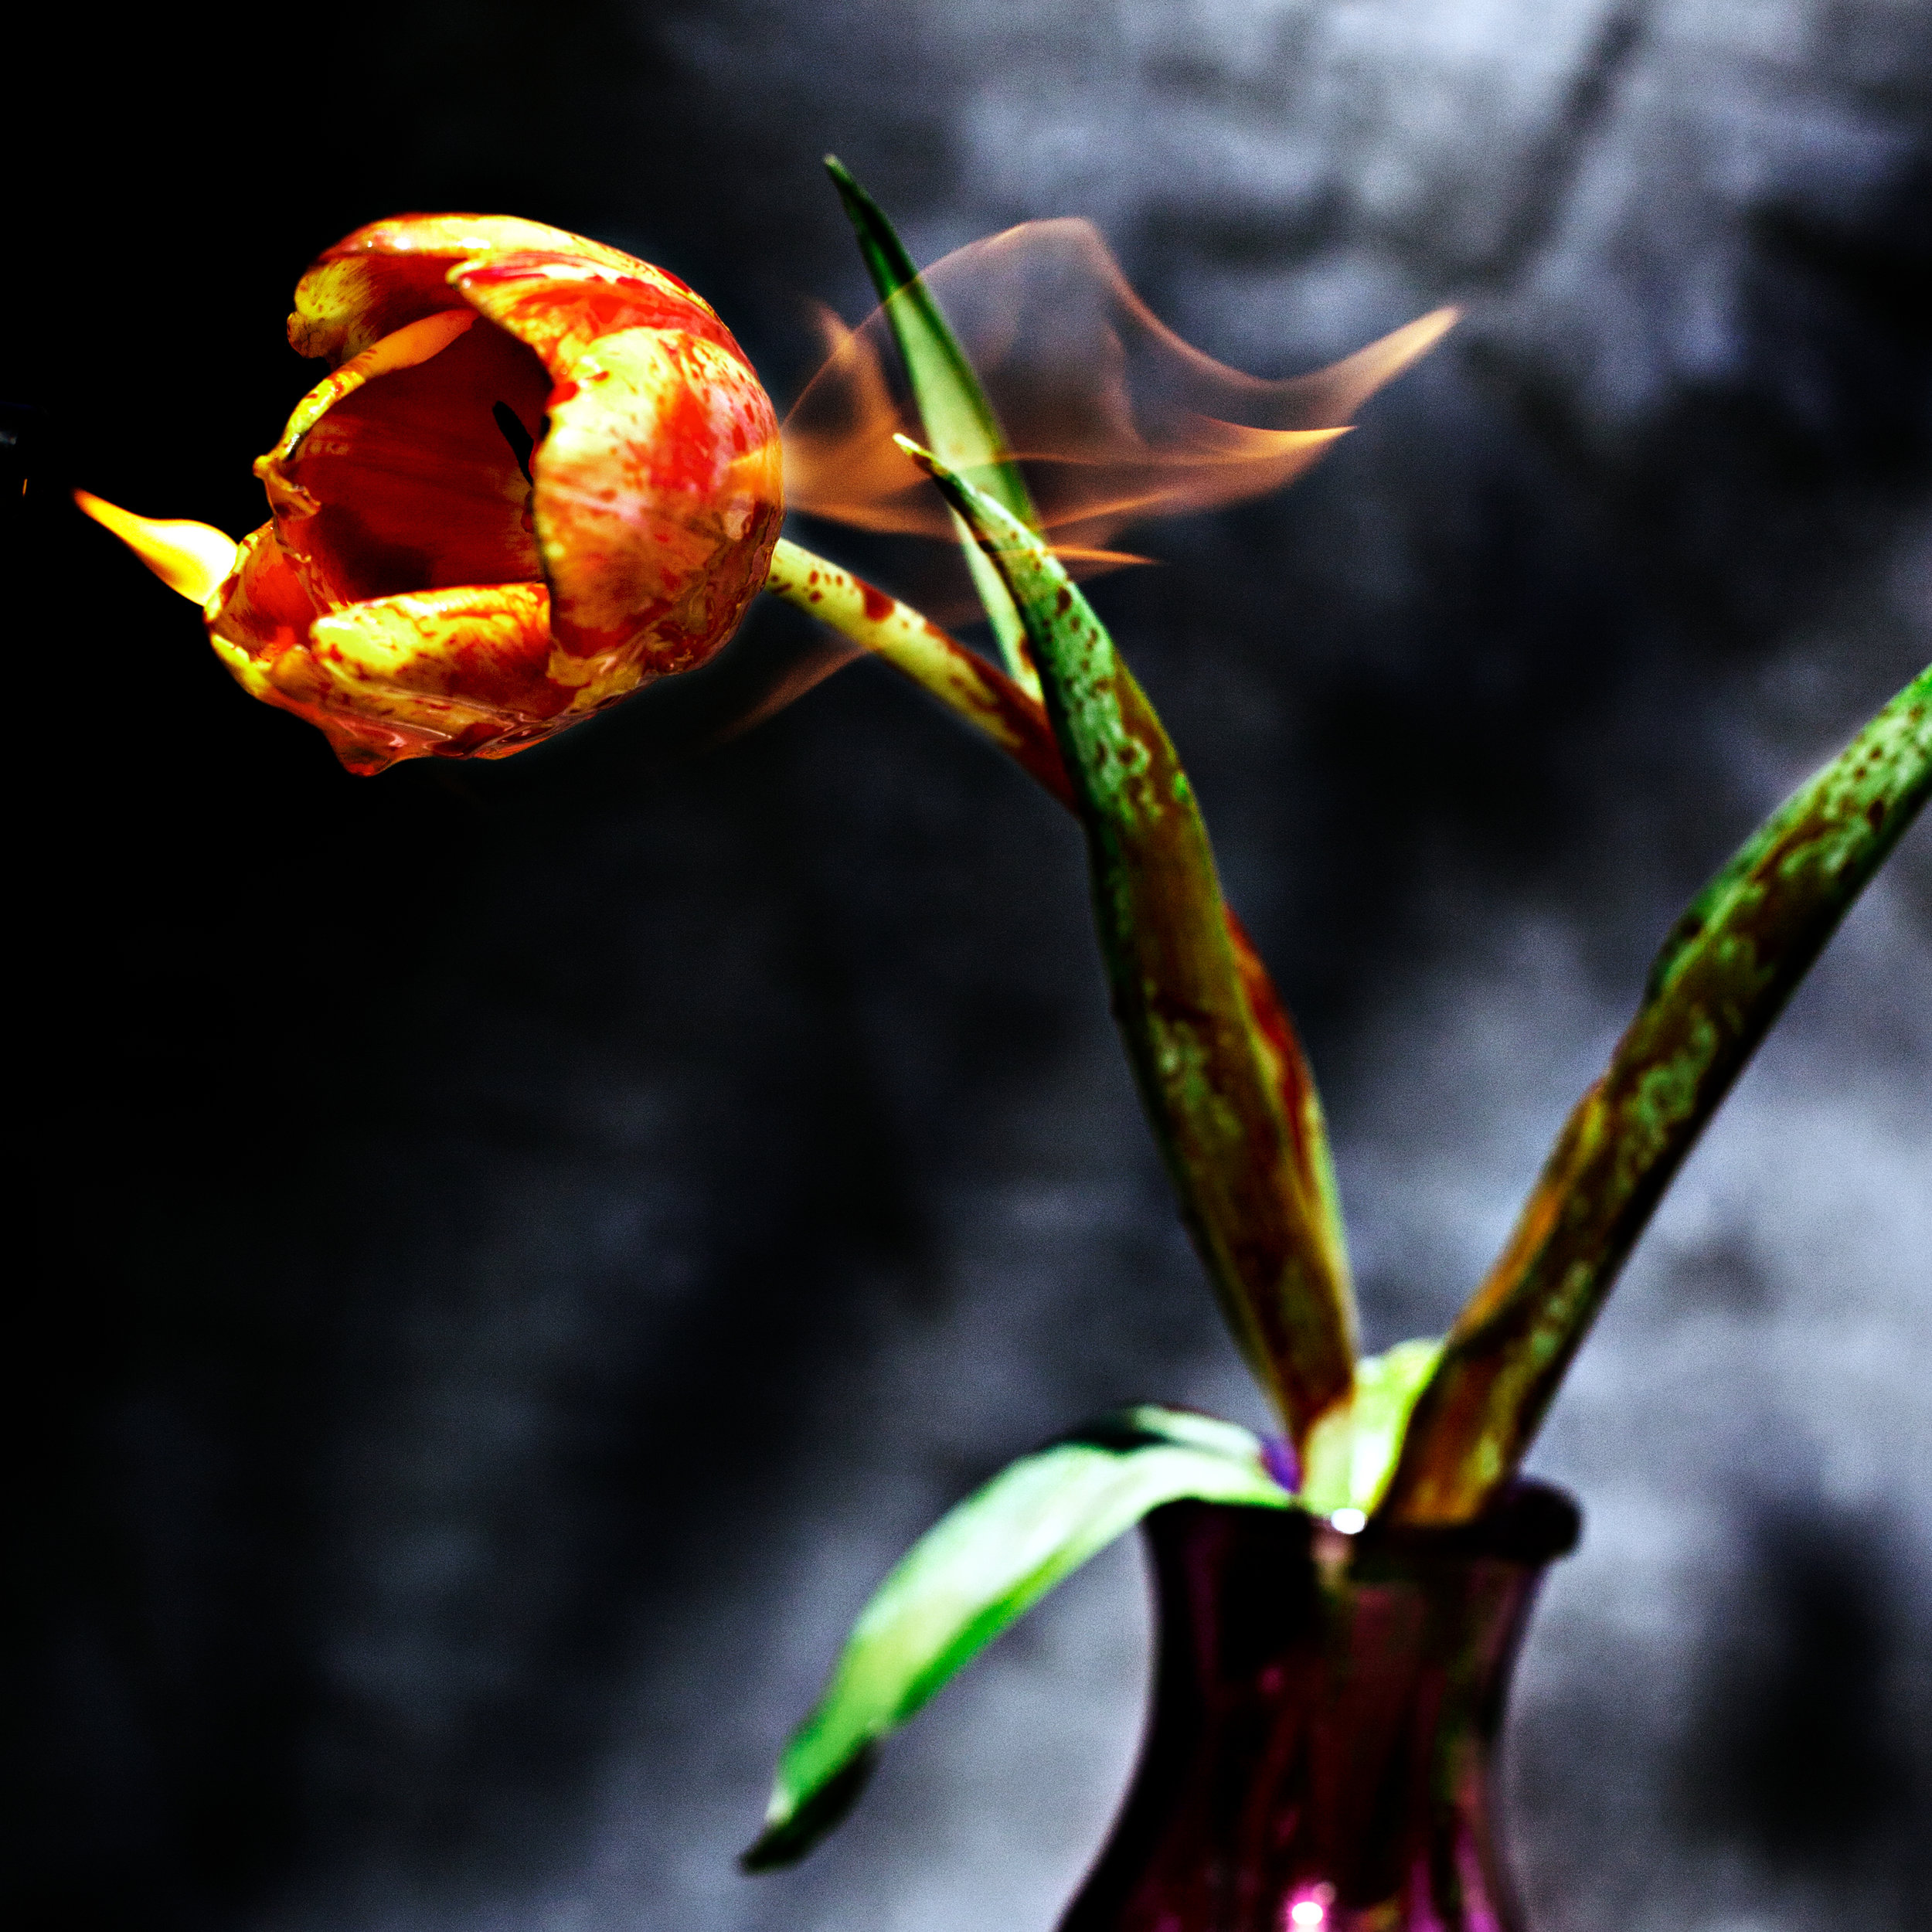 flower-fire-ransom-ashley-.jpg